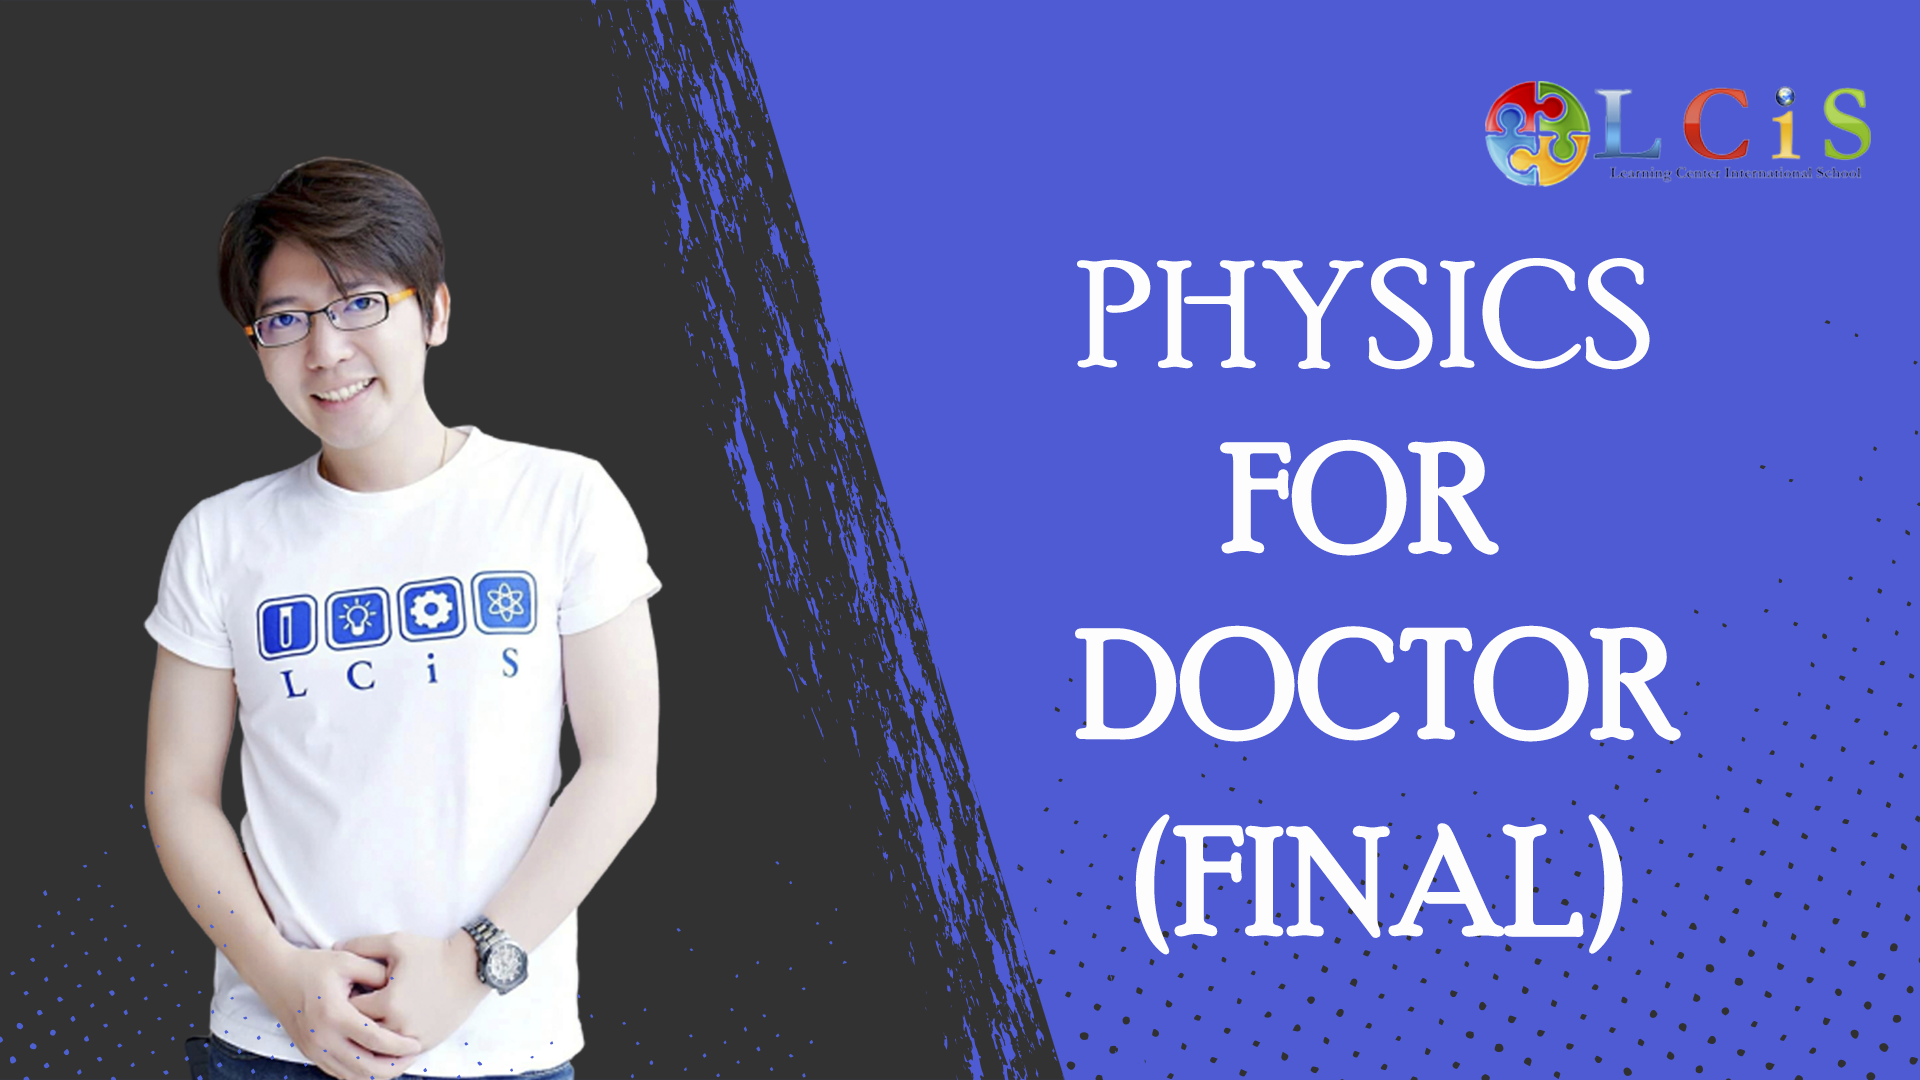 Physics for Doctor (final)